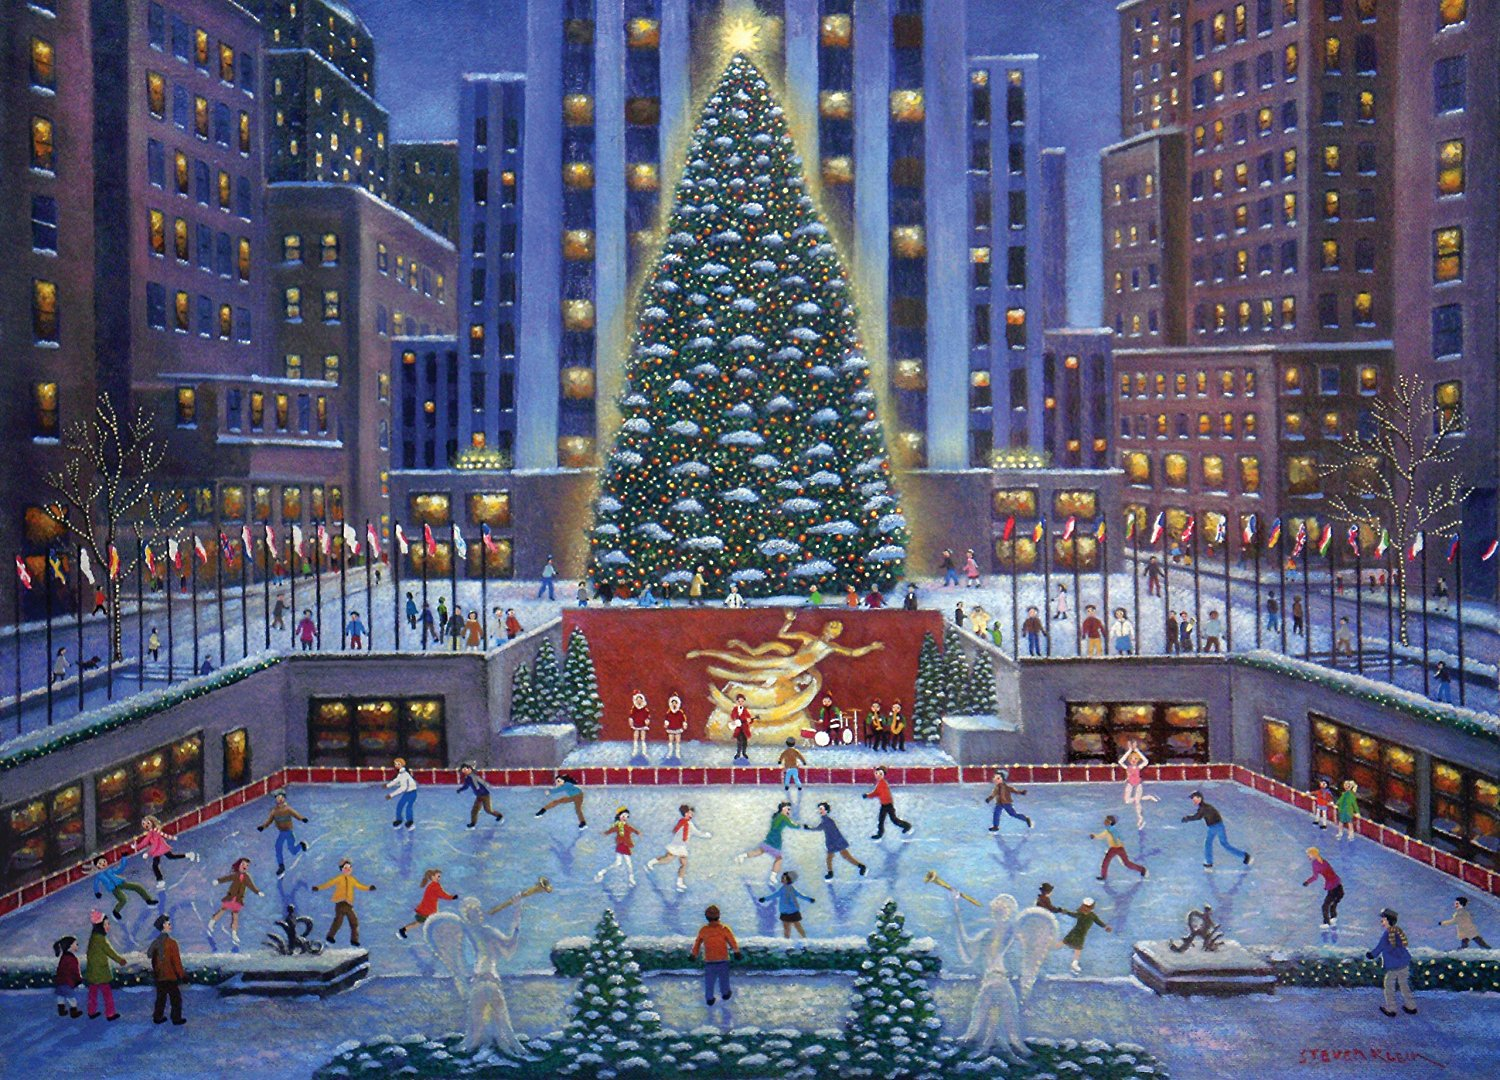 NYC Christmas Puzzle, 1000-Piece By Ravensburger Ship from US by